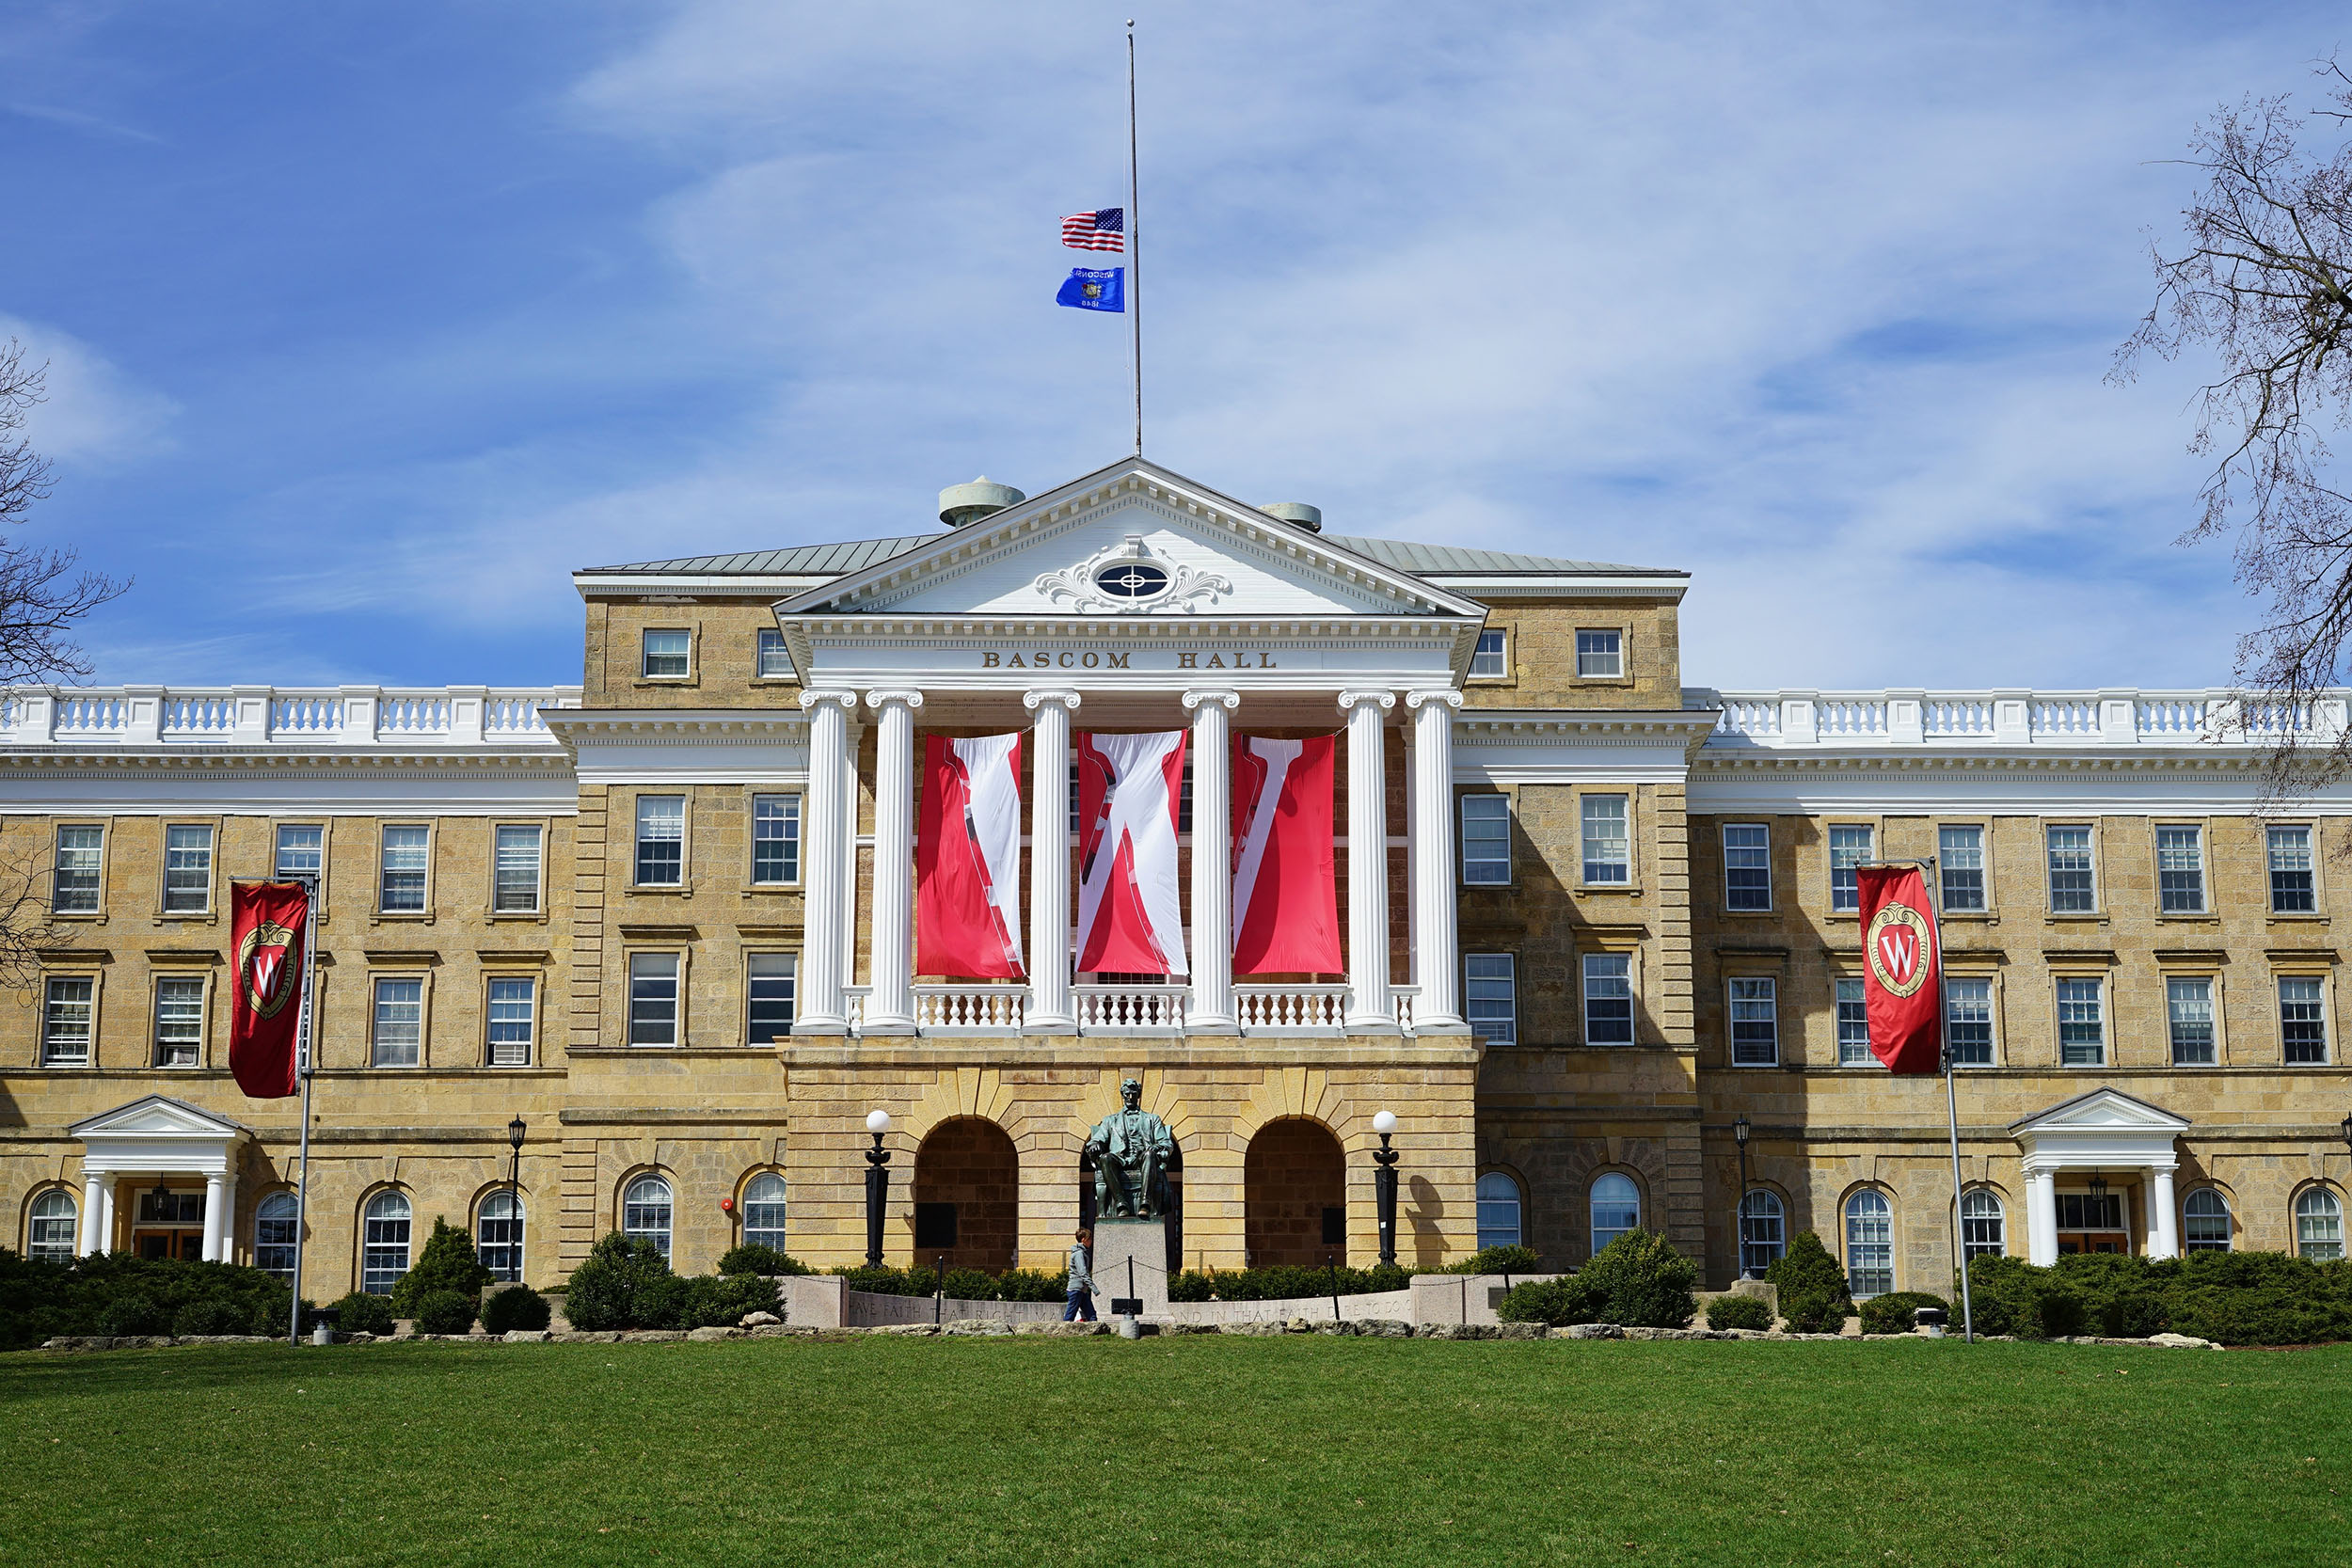 Bascom Hall, the main administrative building on the campus of the University of Wisconsin Madison.